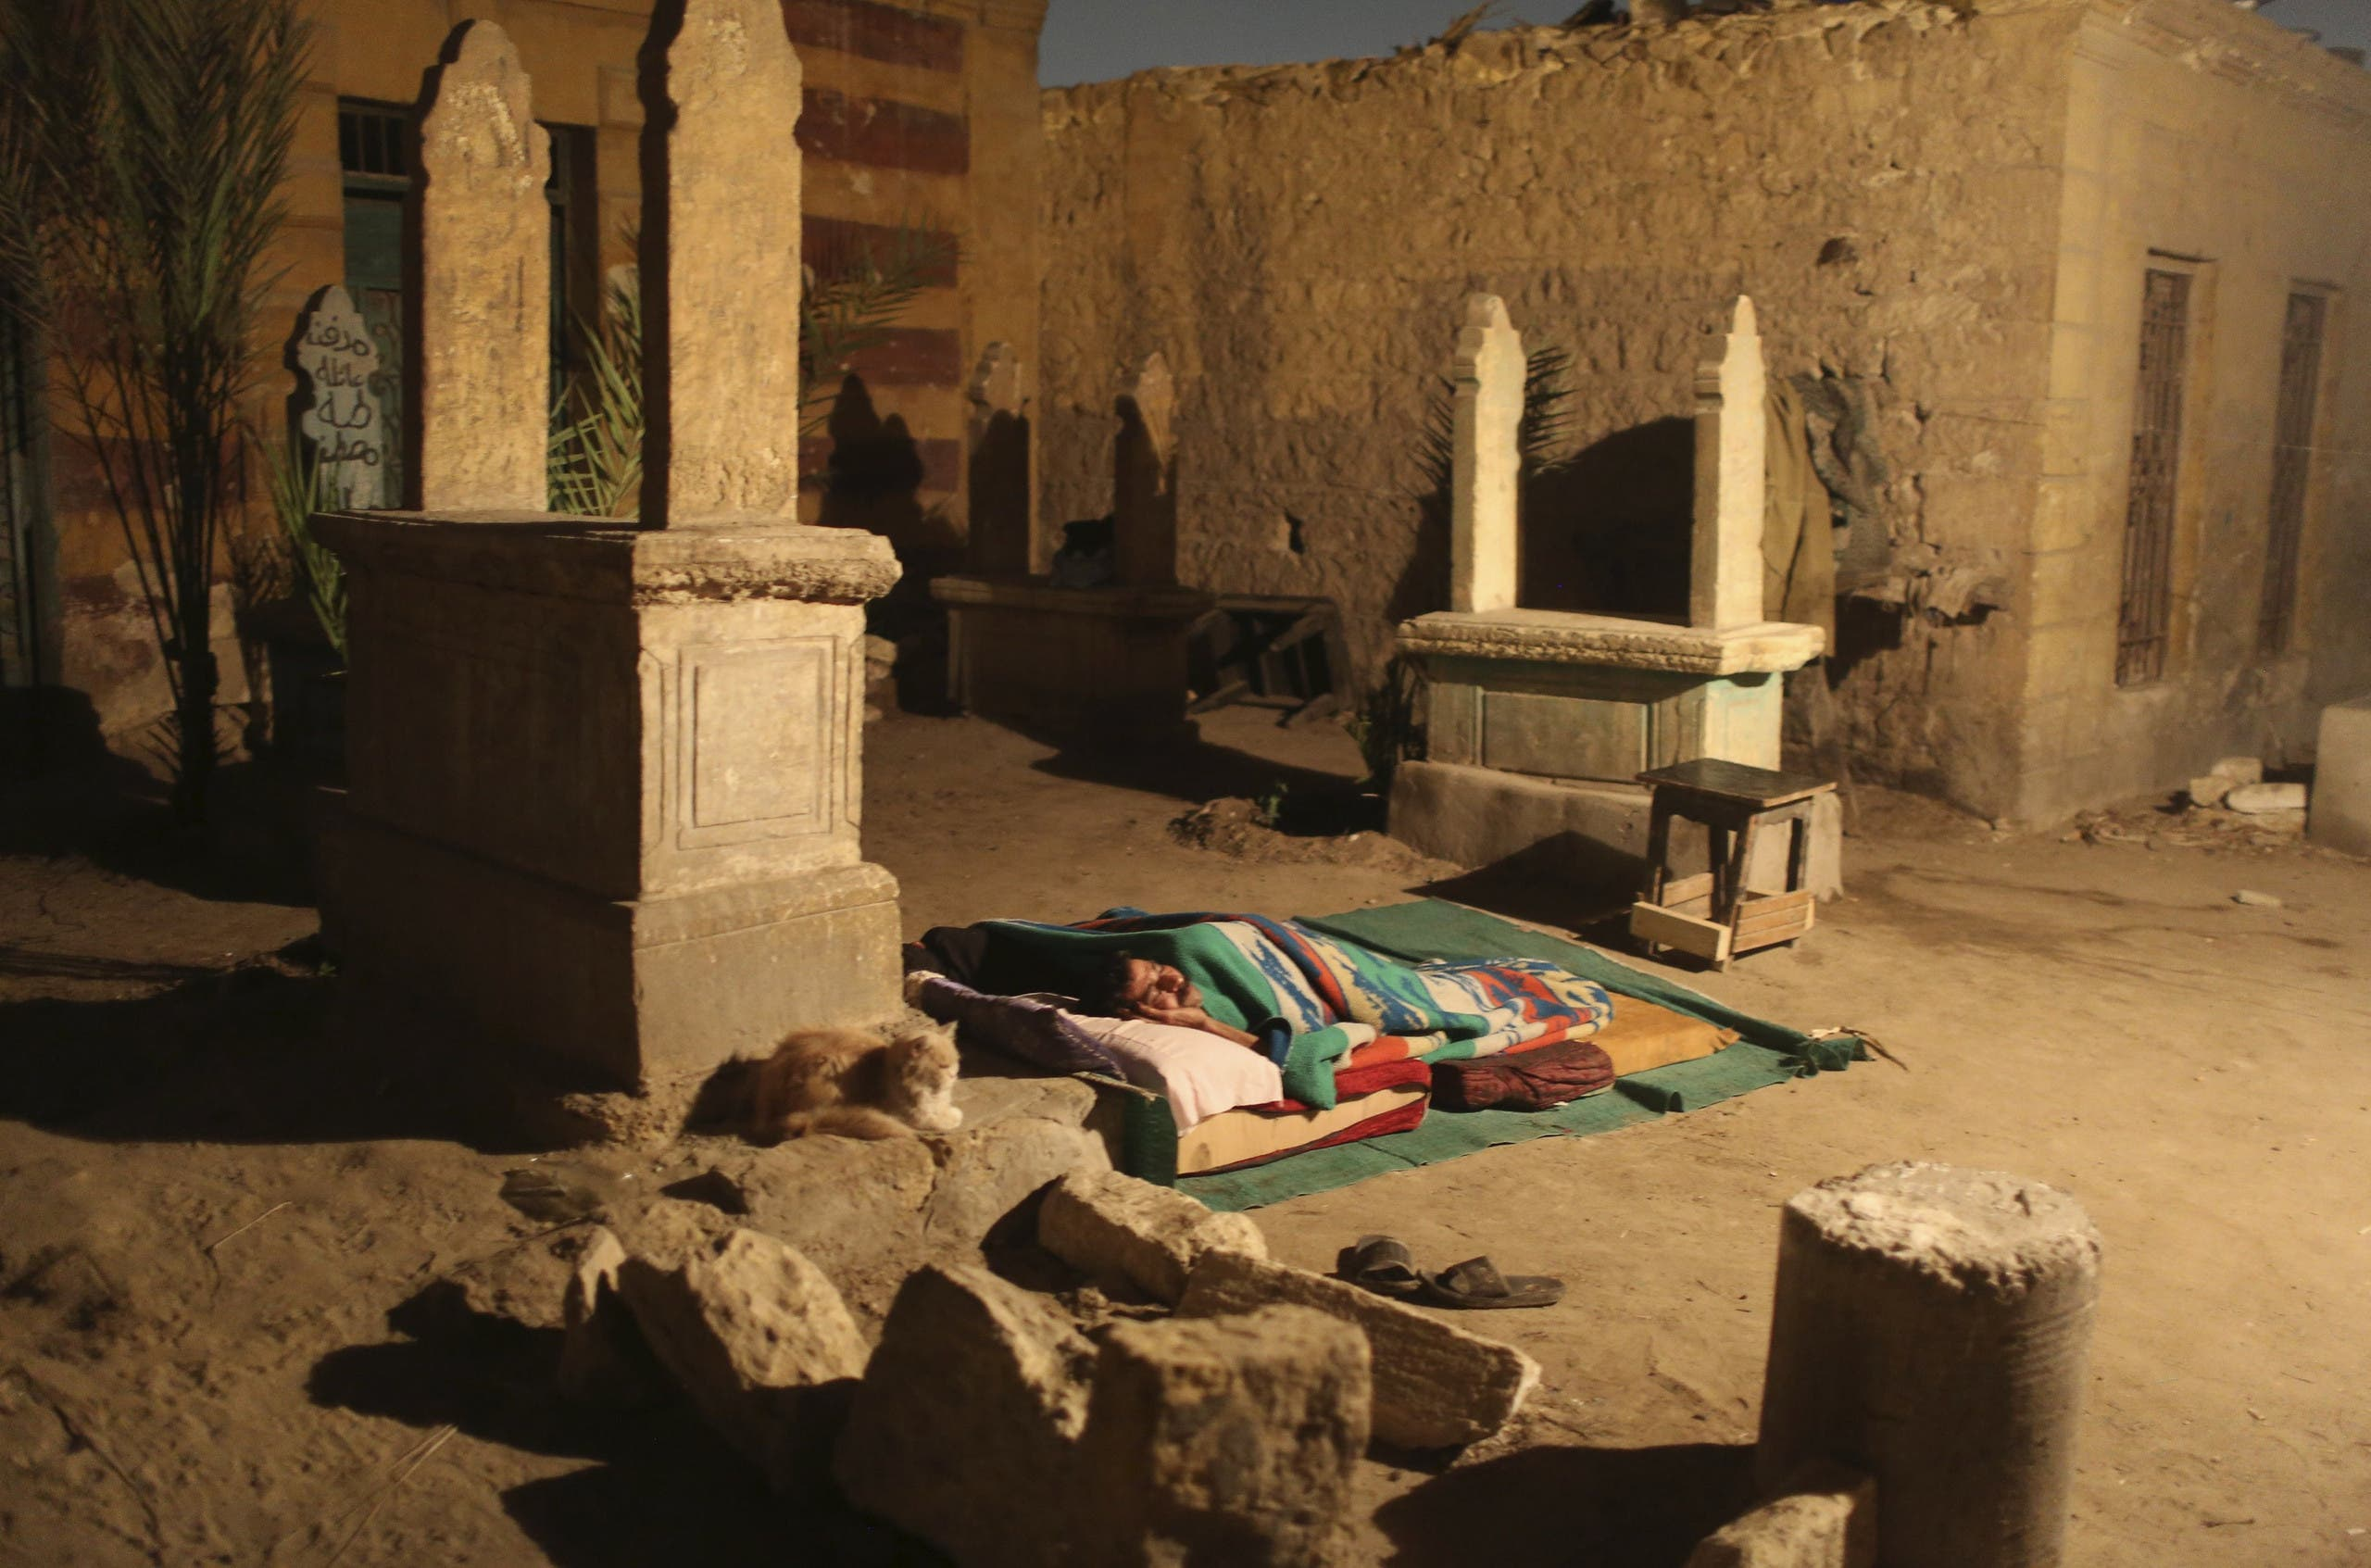 Life meets death in Egypt's 'City of the Dead' - Al ...